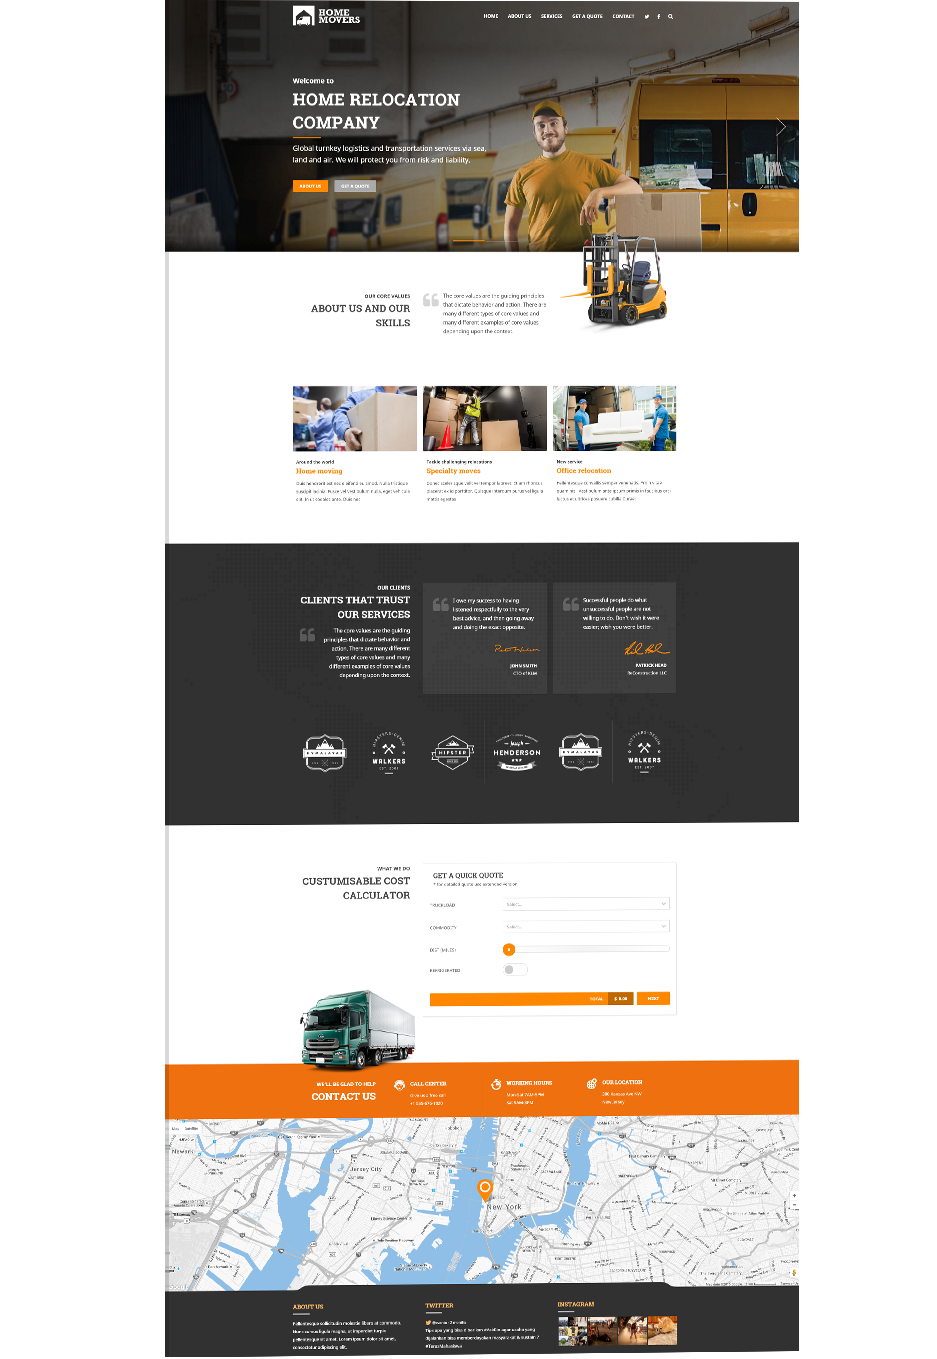 http://cargo.bold-themes.com/wp-content/uploads/2015/12/Splash-screens-center-2.png